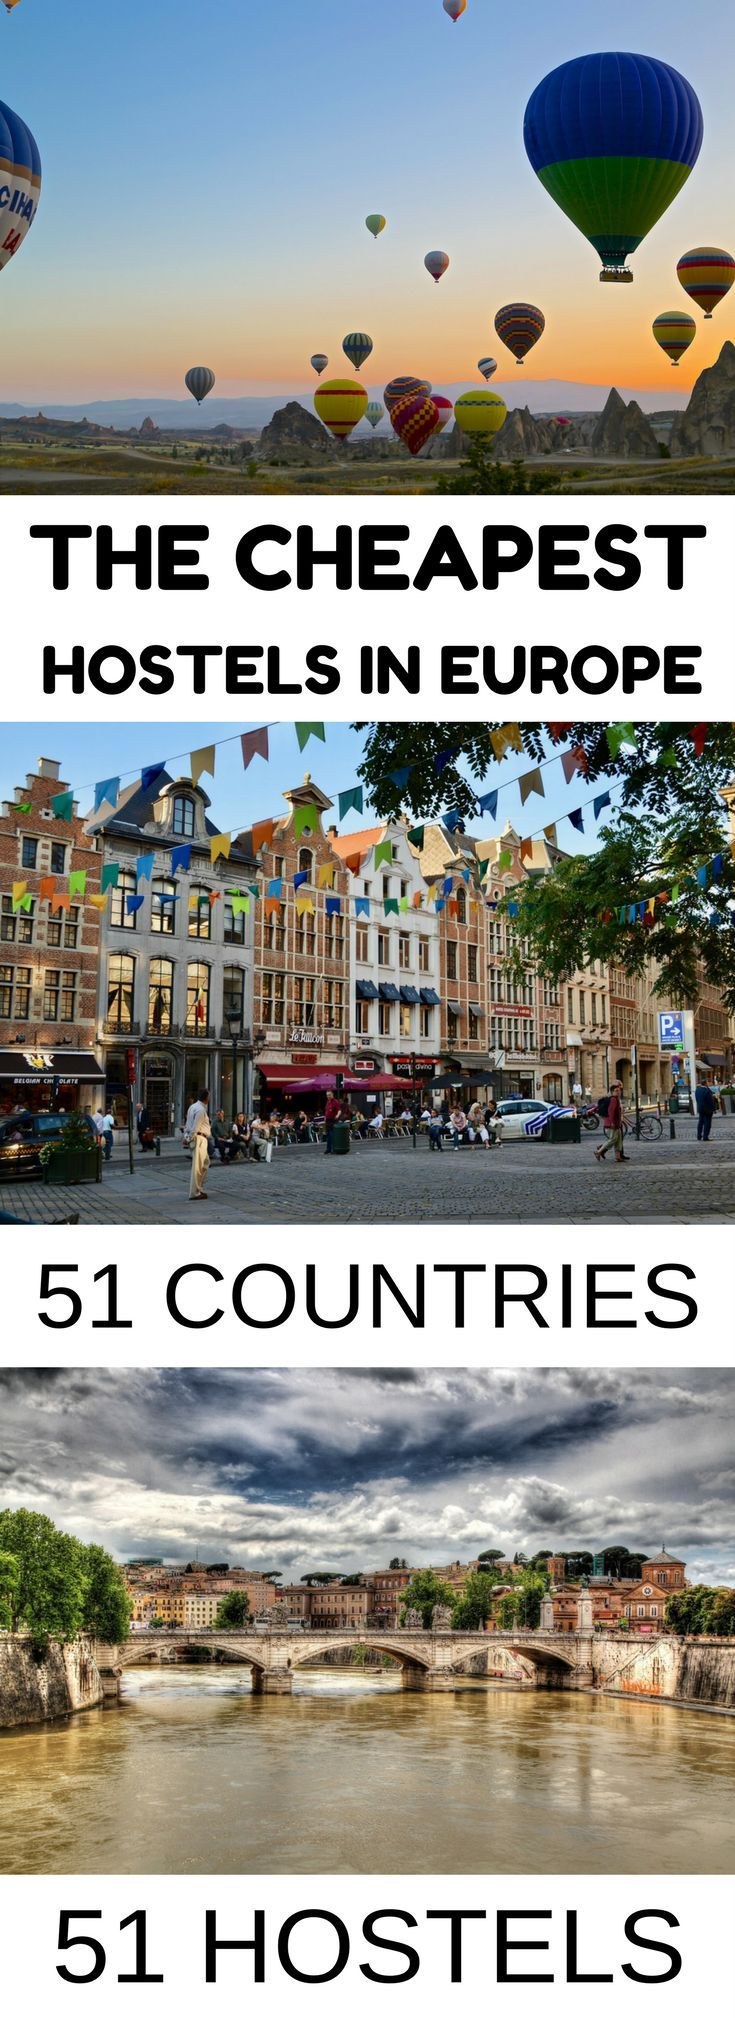 The cheapest hostels in Europe for those who love budget travel